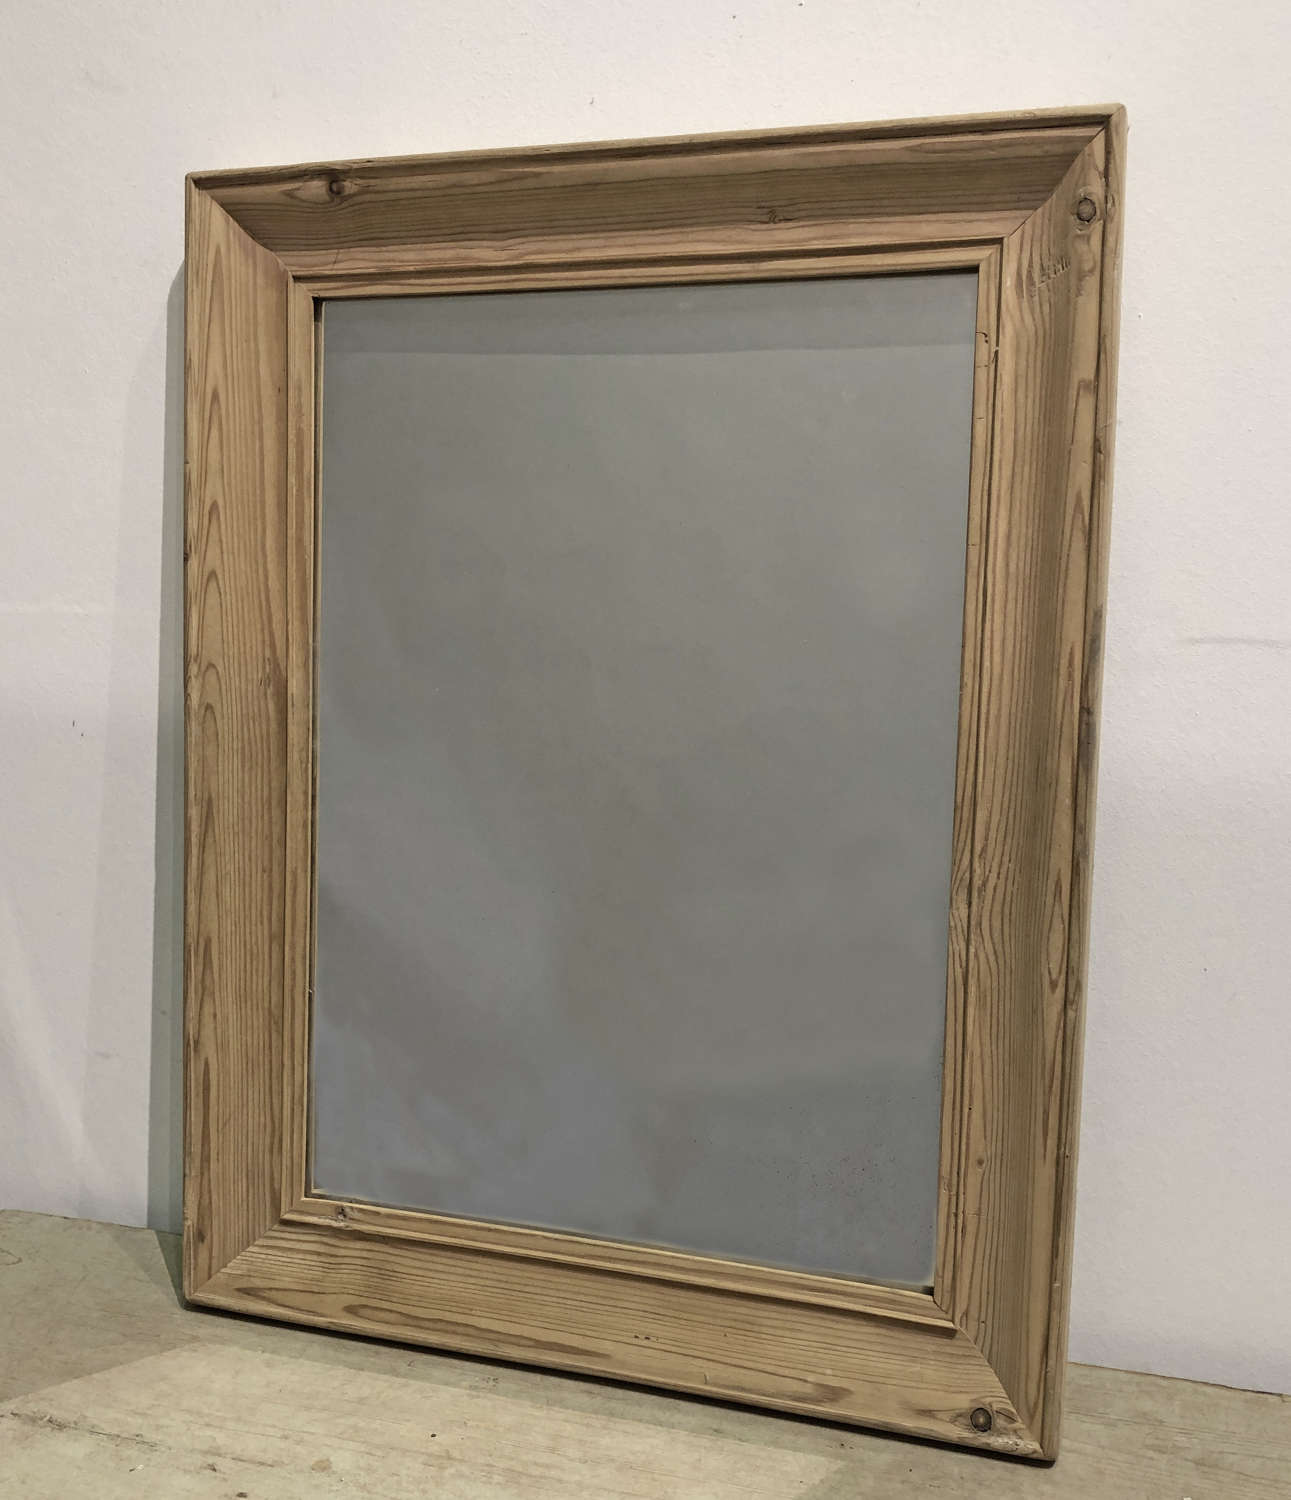 Simple French moulded pine framed Mirror - circa 1920